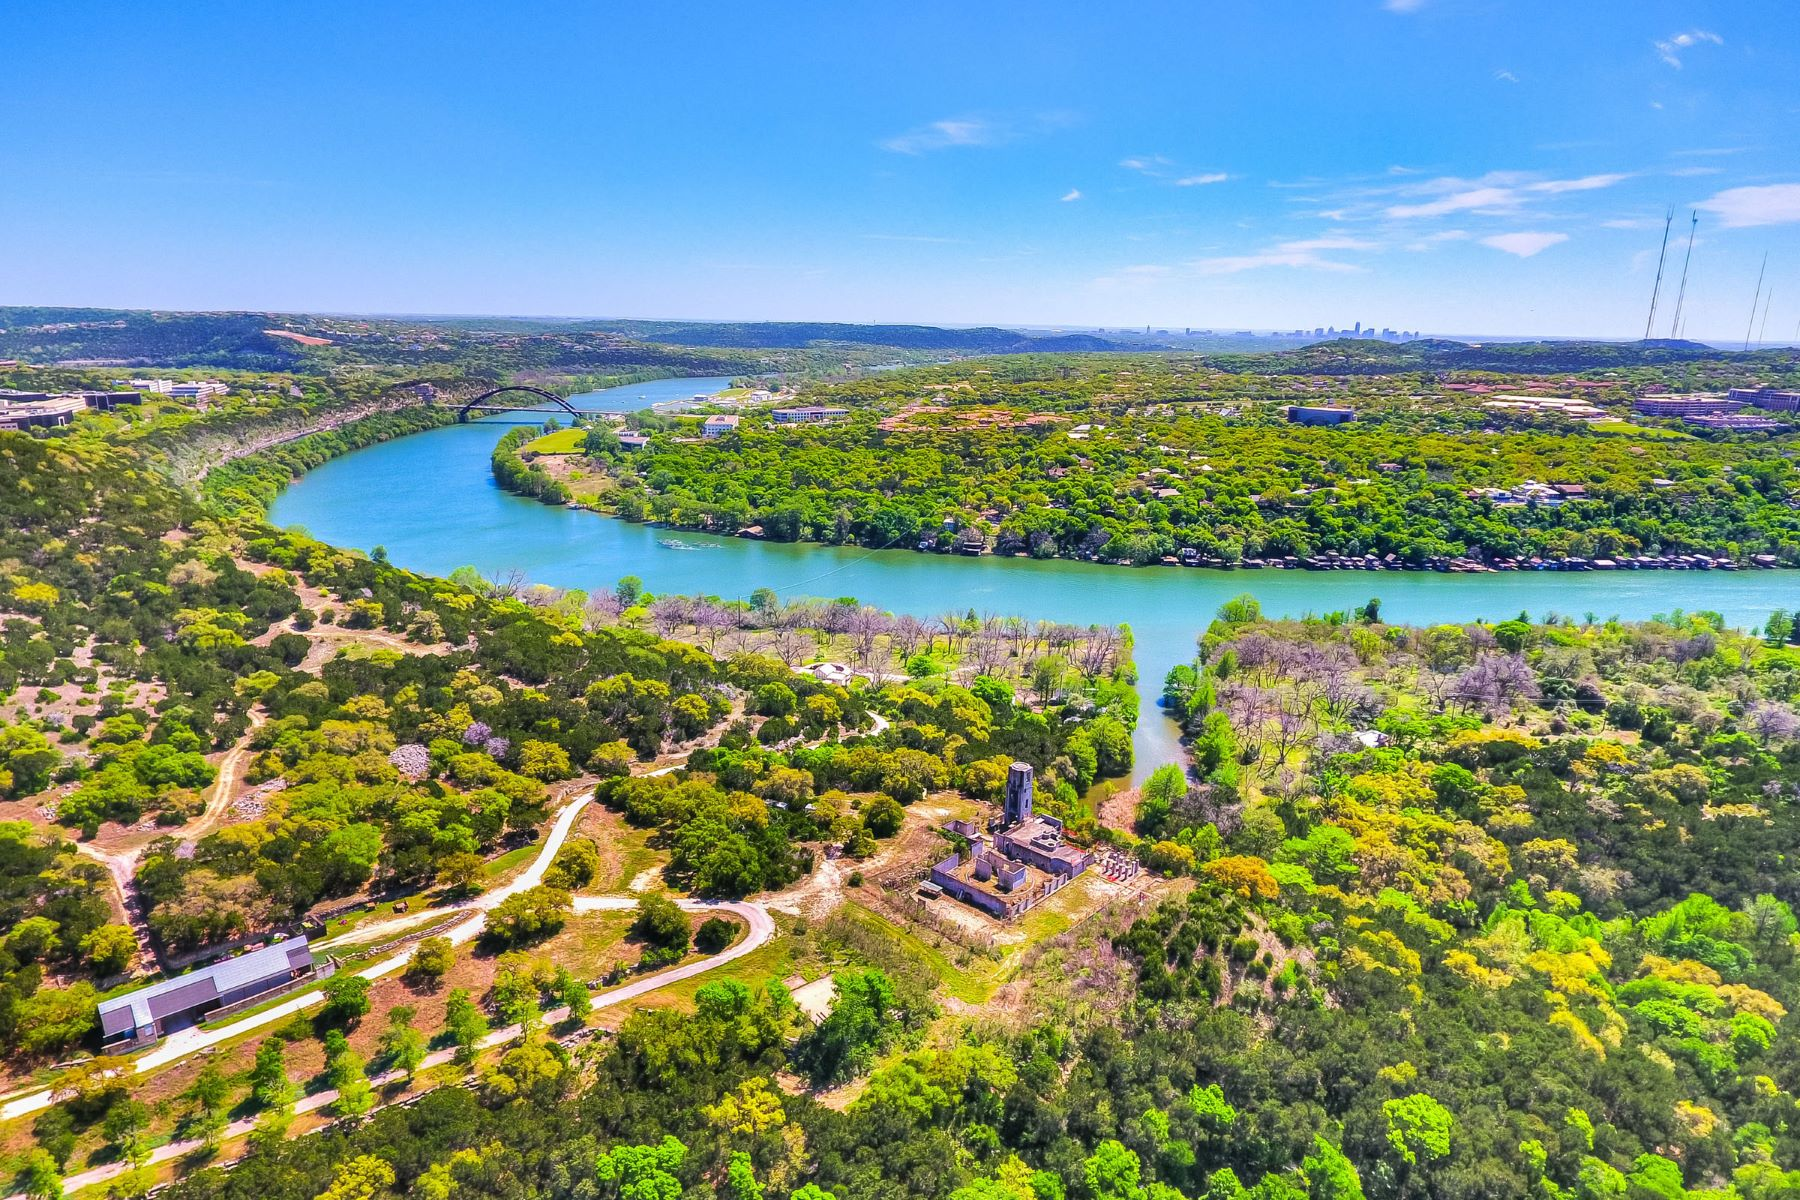 Ferme / Ranch / Plantation pour l Vente à Lake Austin Ranch 7400 Coldwater Canyon, Austin, Texas, 78730 États-Unis